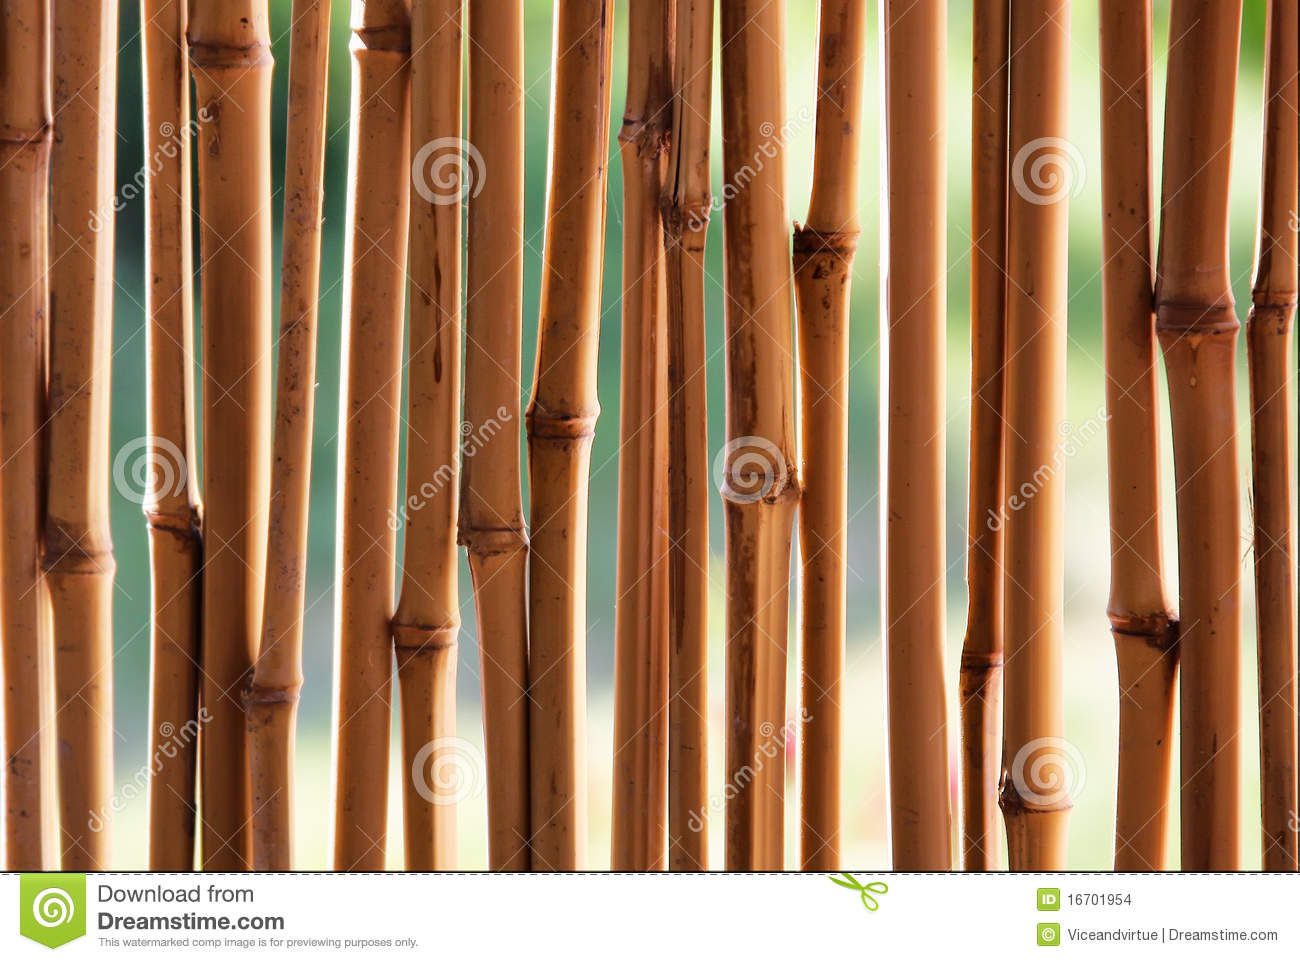 Bamboo cane background stock images image 16701954 for Uses for bamboo canes